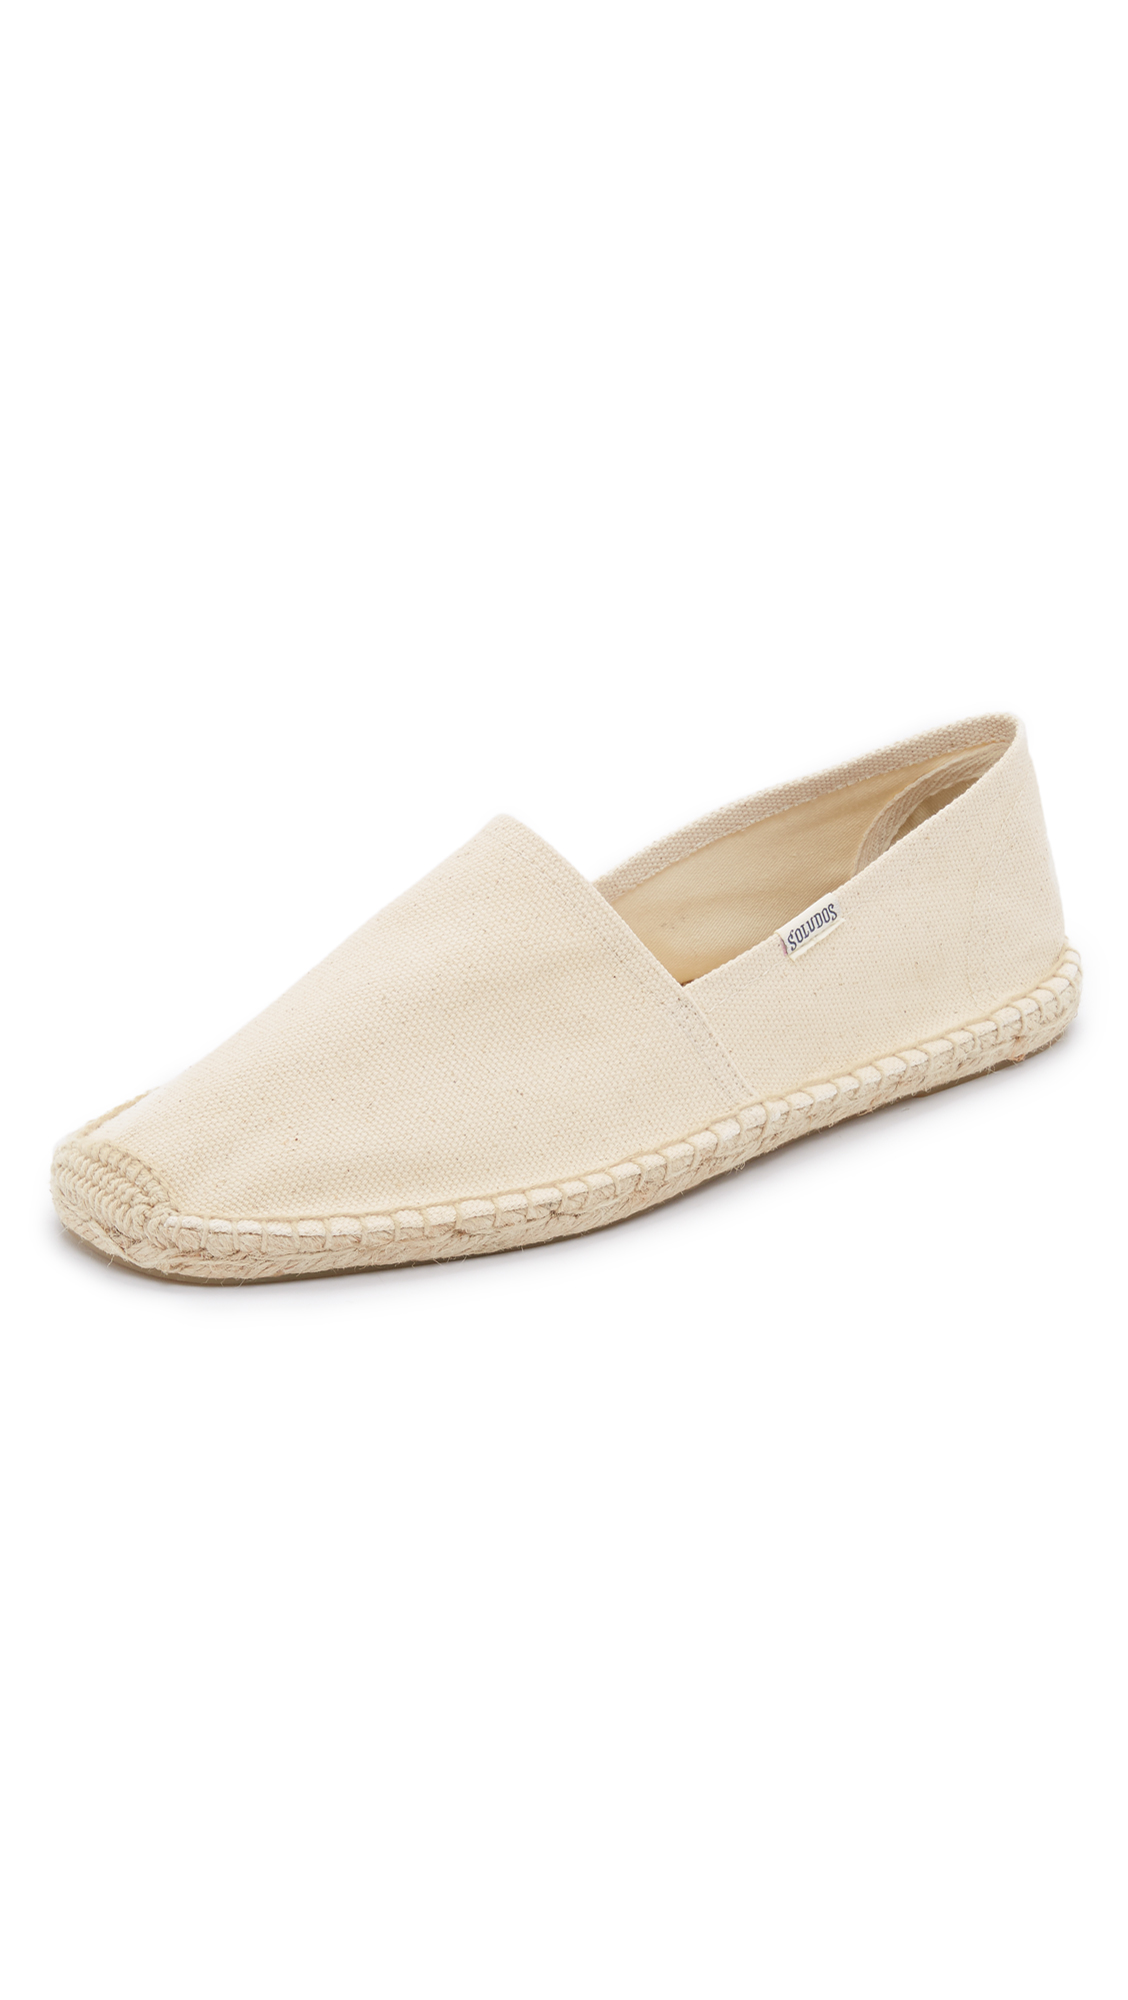 Soludos Canvases DALI CANVAS SLIP ON ESPADRILLES